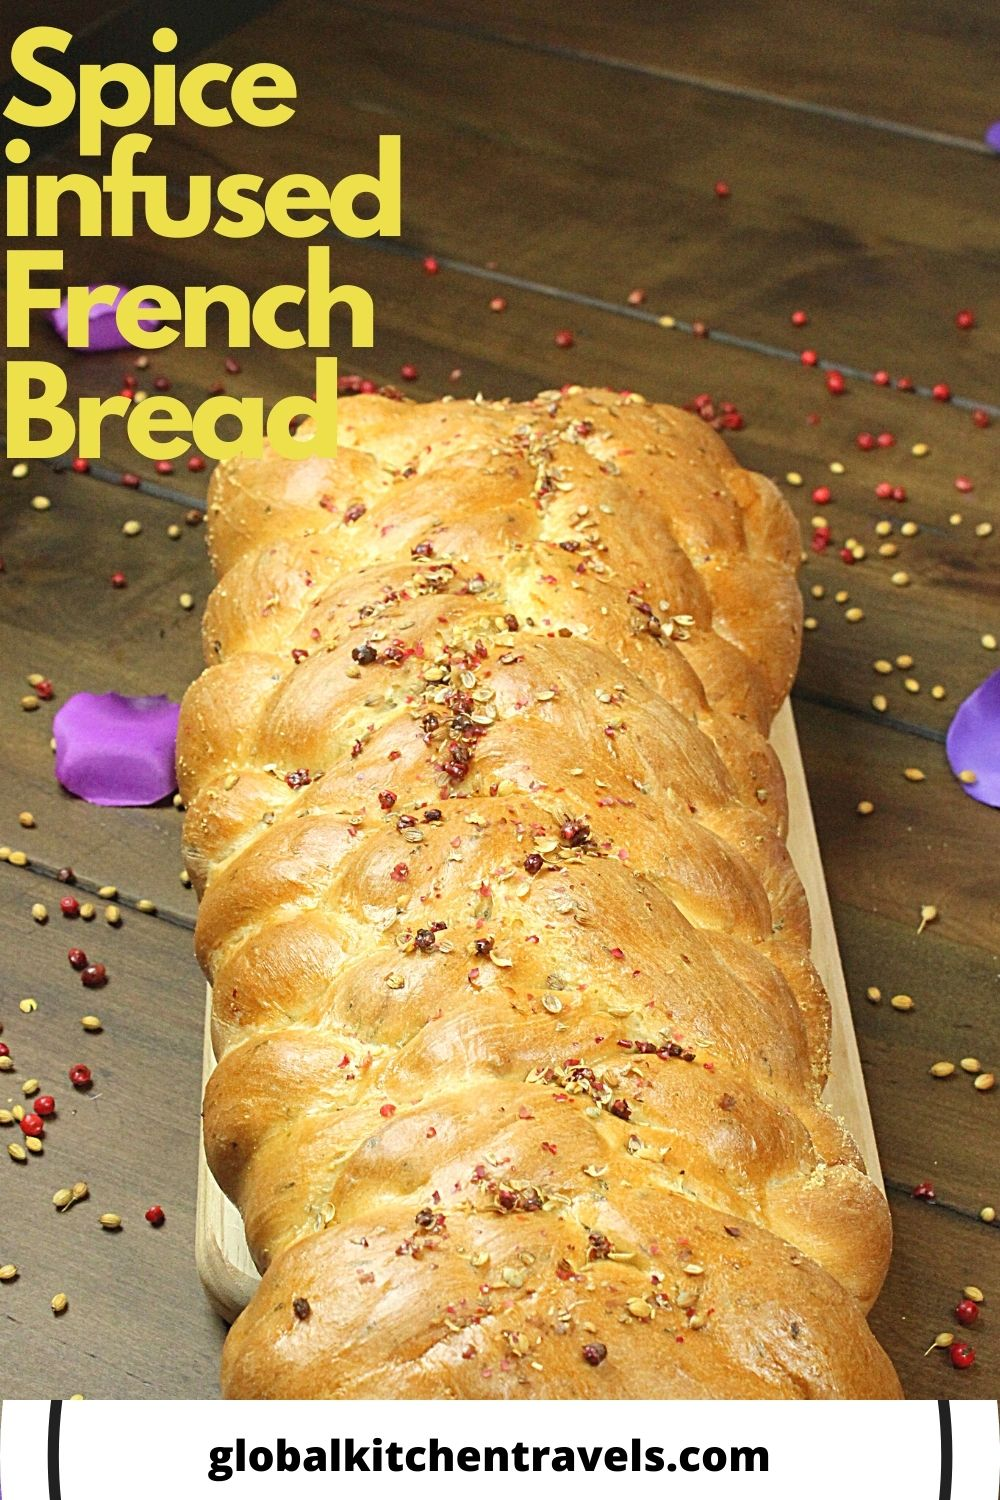 7 strand loaf of French Bread with text